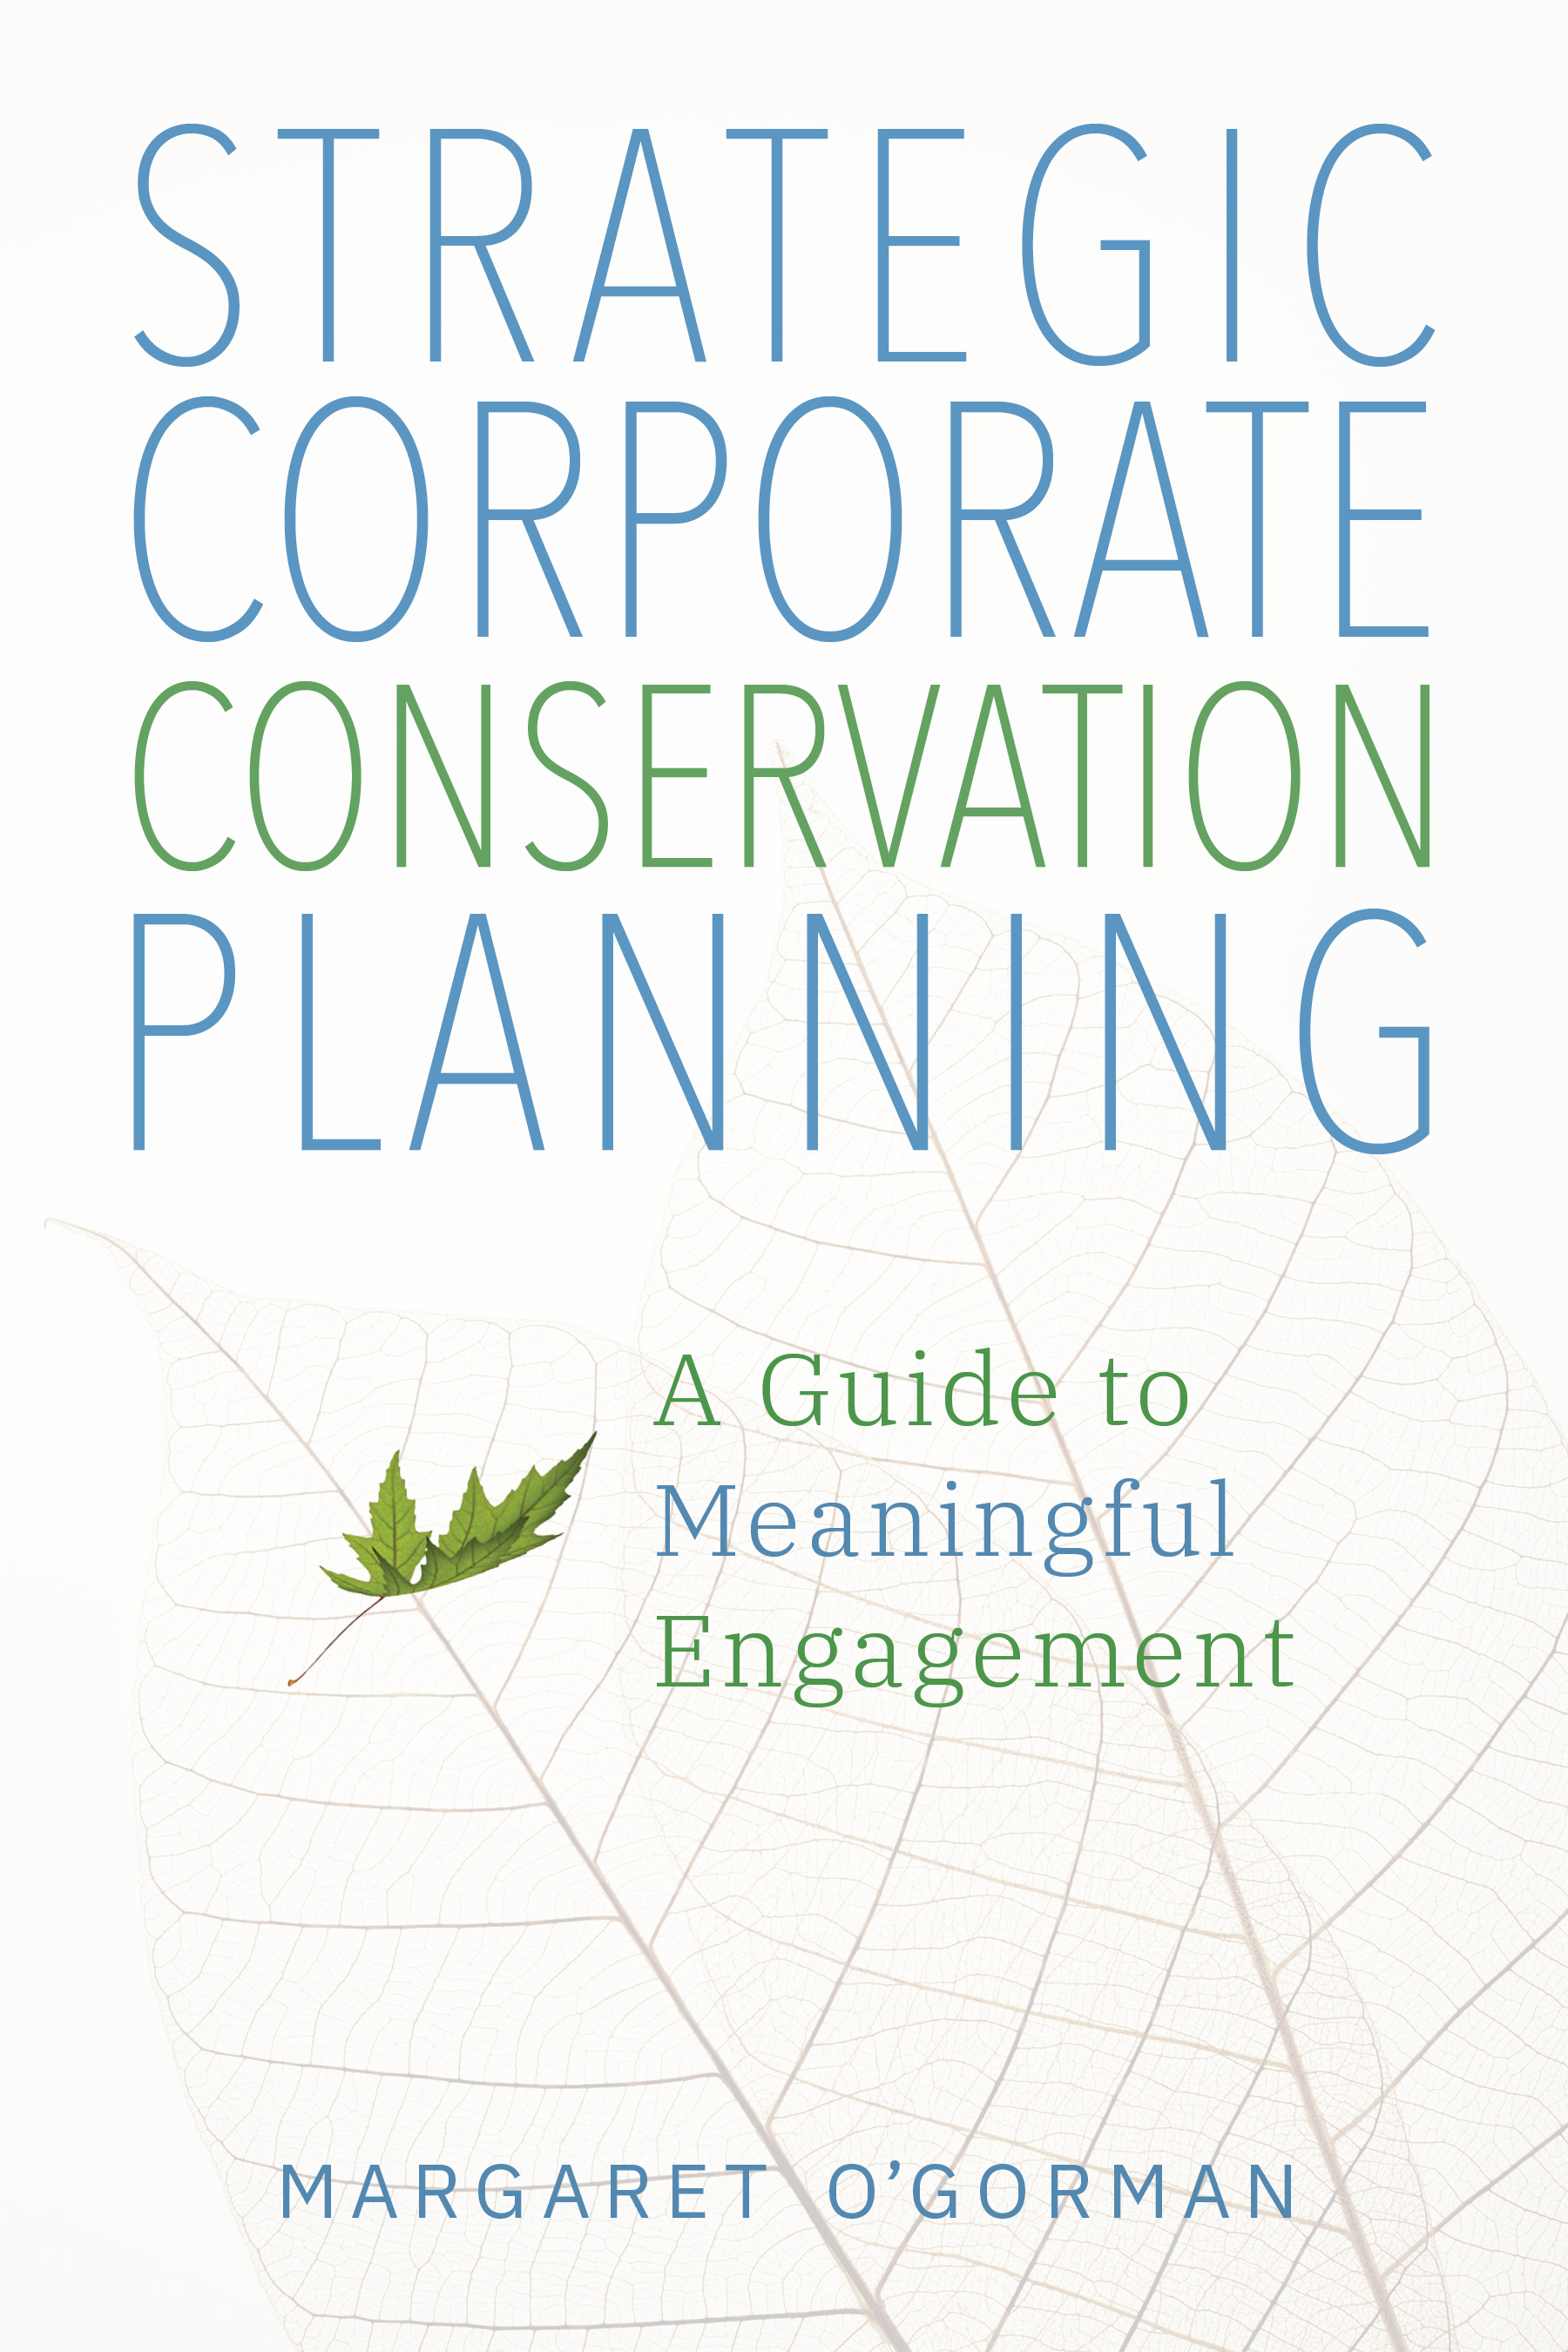 Strategic Corporate Conservation Planning: A Guide to Meaningful Engagement book cover